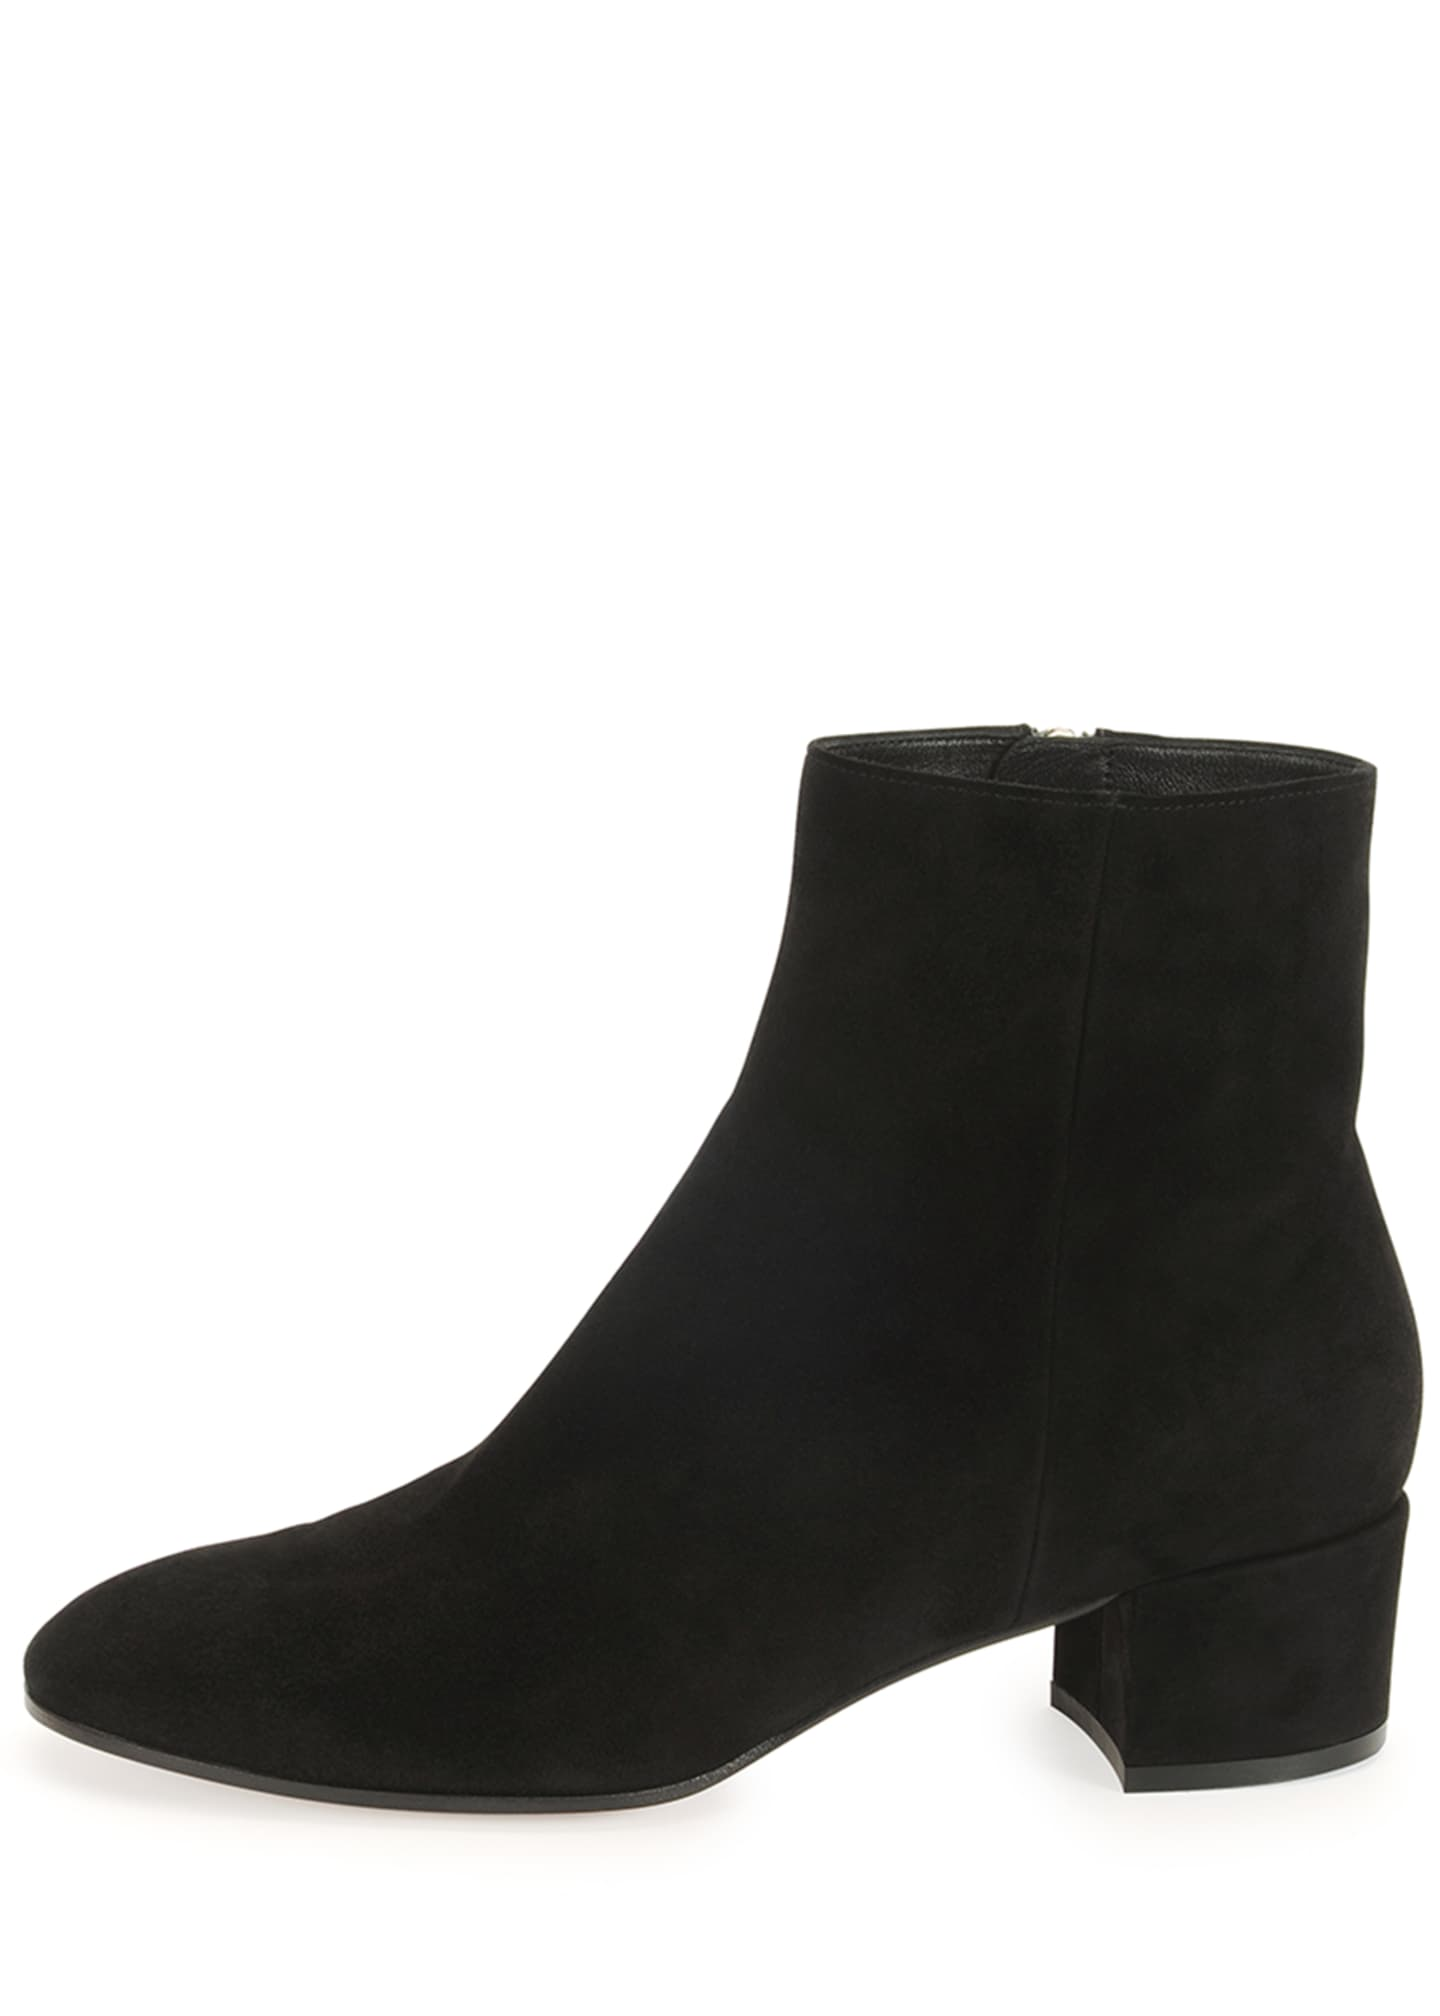 Image 5 of 5: Suede Block-Heel Ankle Boot